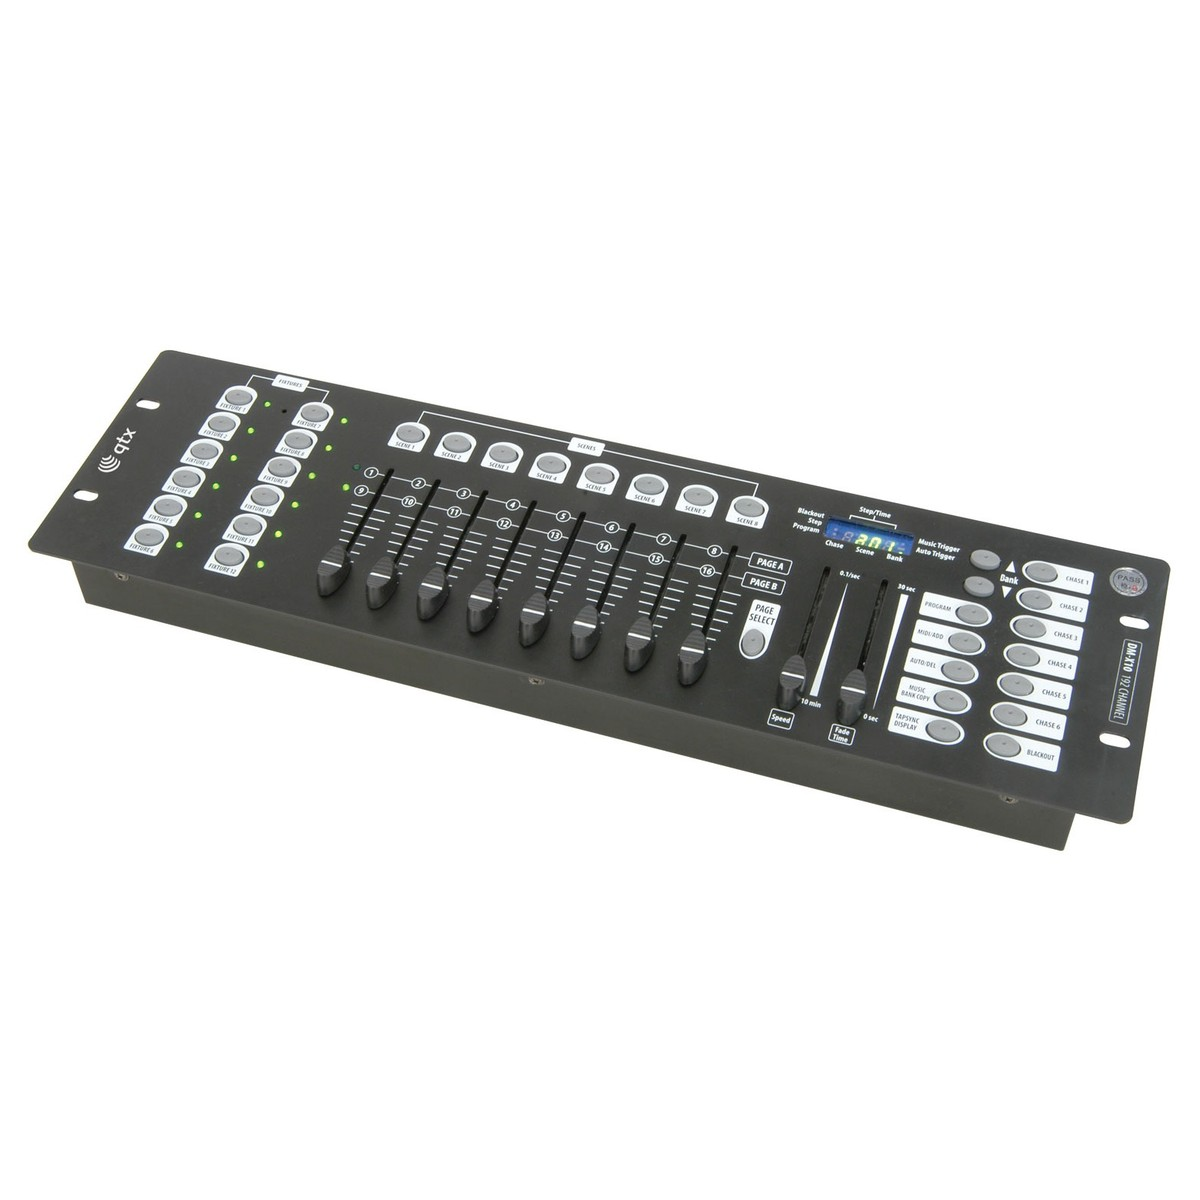 QTX DM-X10 192 Channel DMX Controller At Gear4music.com